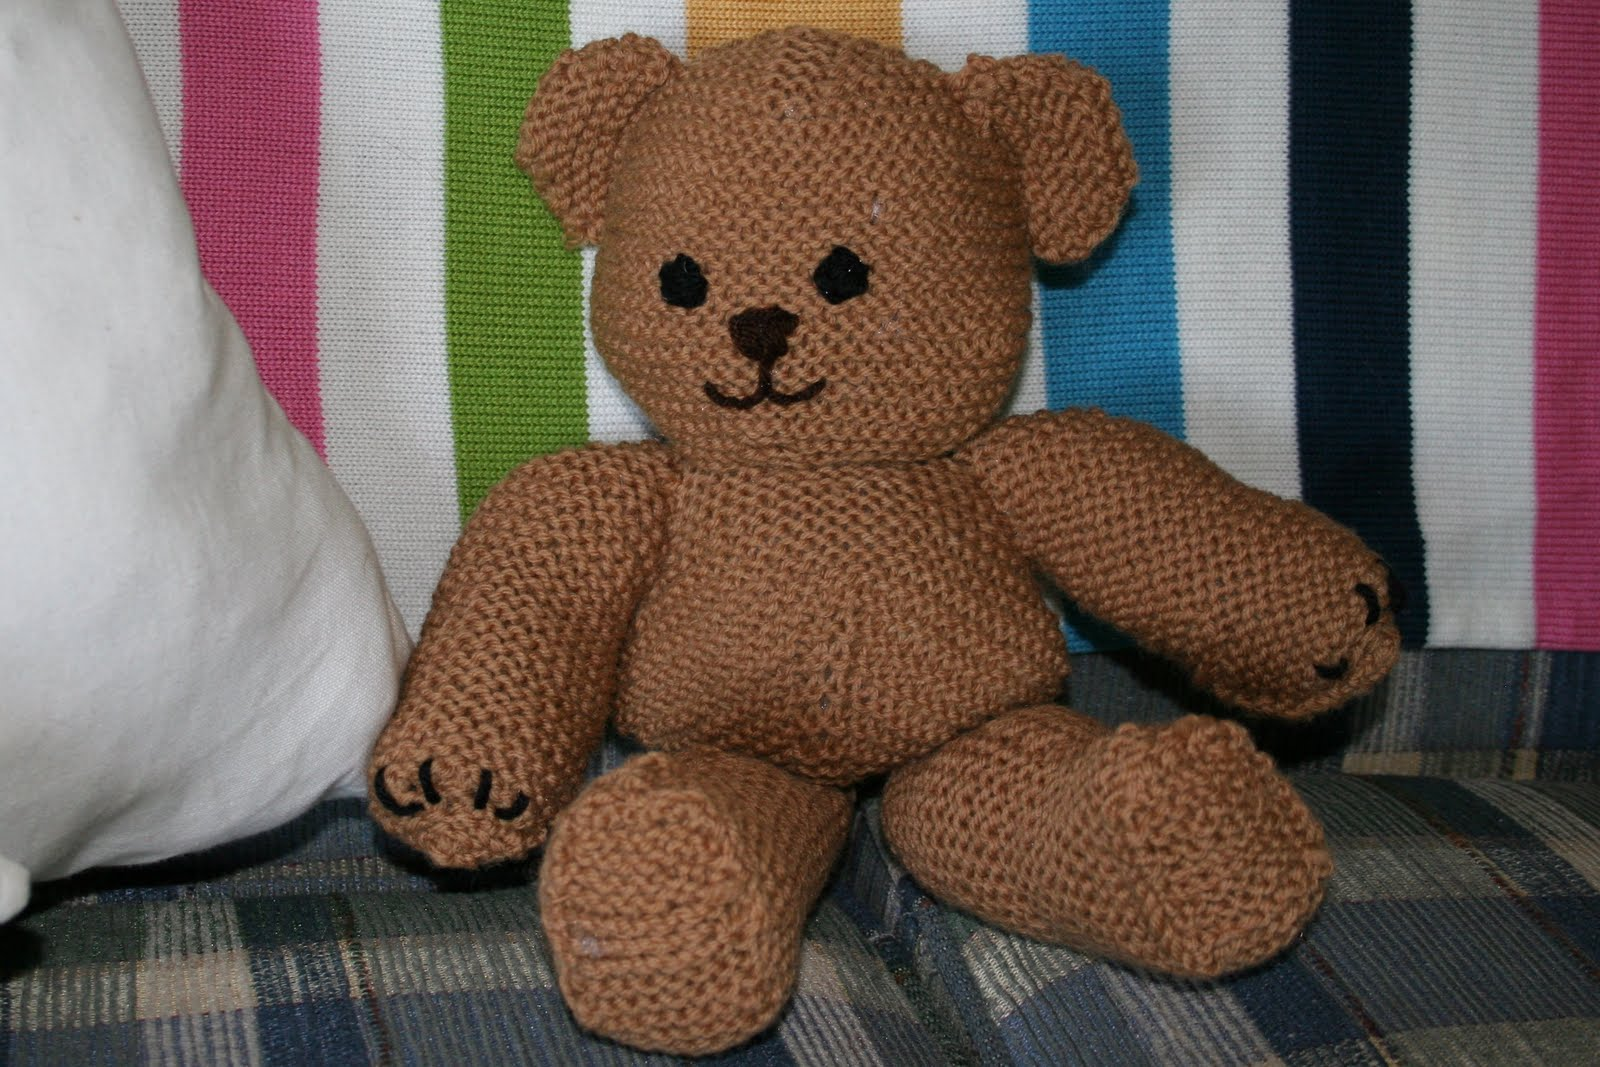 Knitted Heart Pattern Free : joyful strength: knit teddy bear